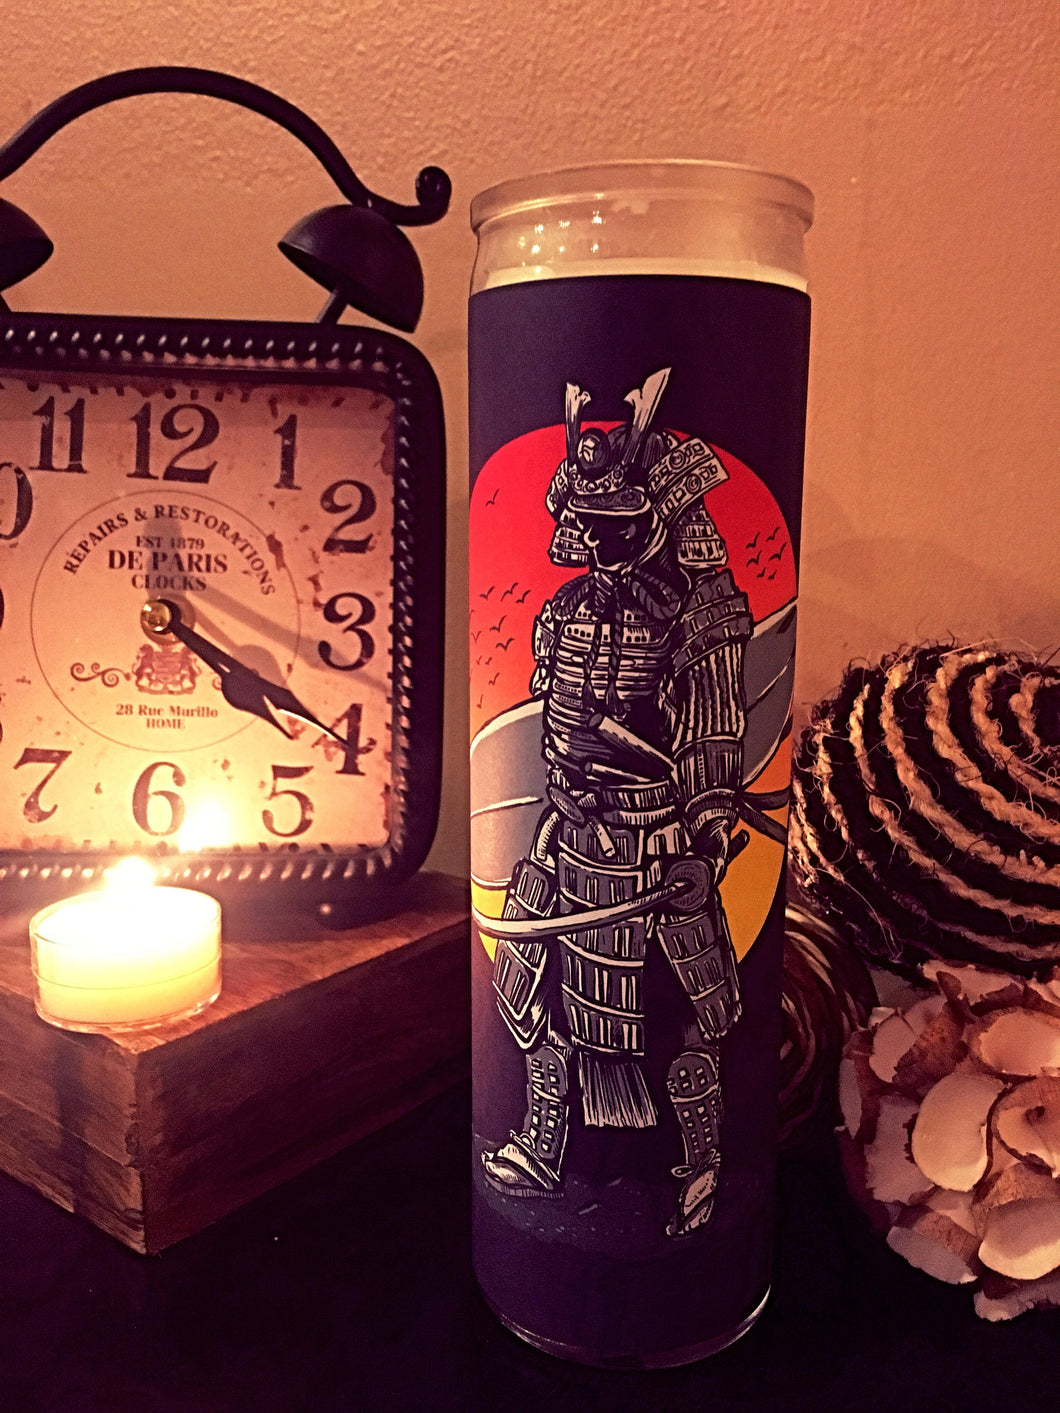 Samurai, Surfing, Japanese Art, Scented Candle, Prayer